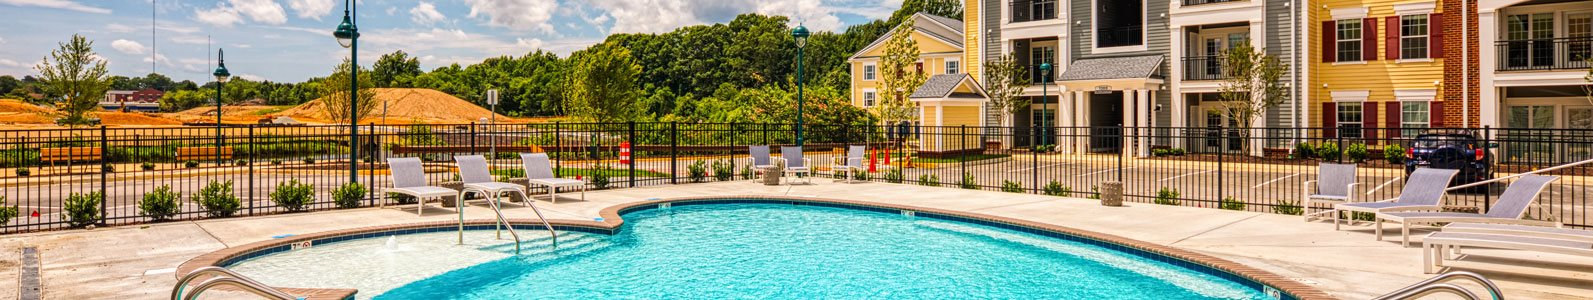 Pool_Winterfield_Midlothian_Apartments